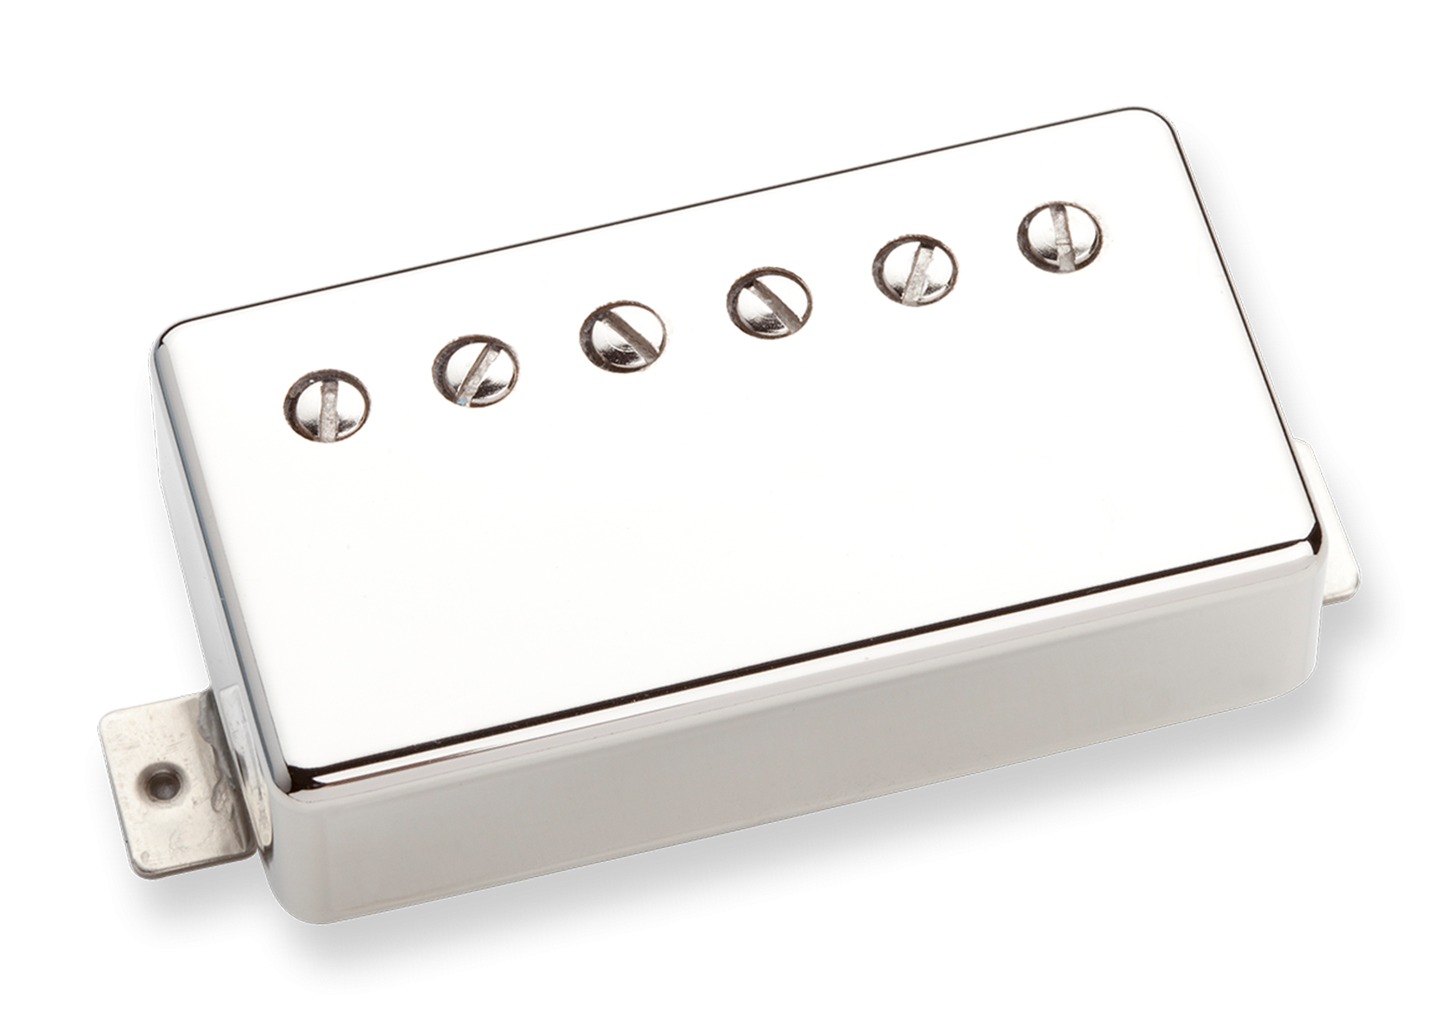 Seymour Duncan Seth Lover Humbucker - SH-55N Neck Nickel